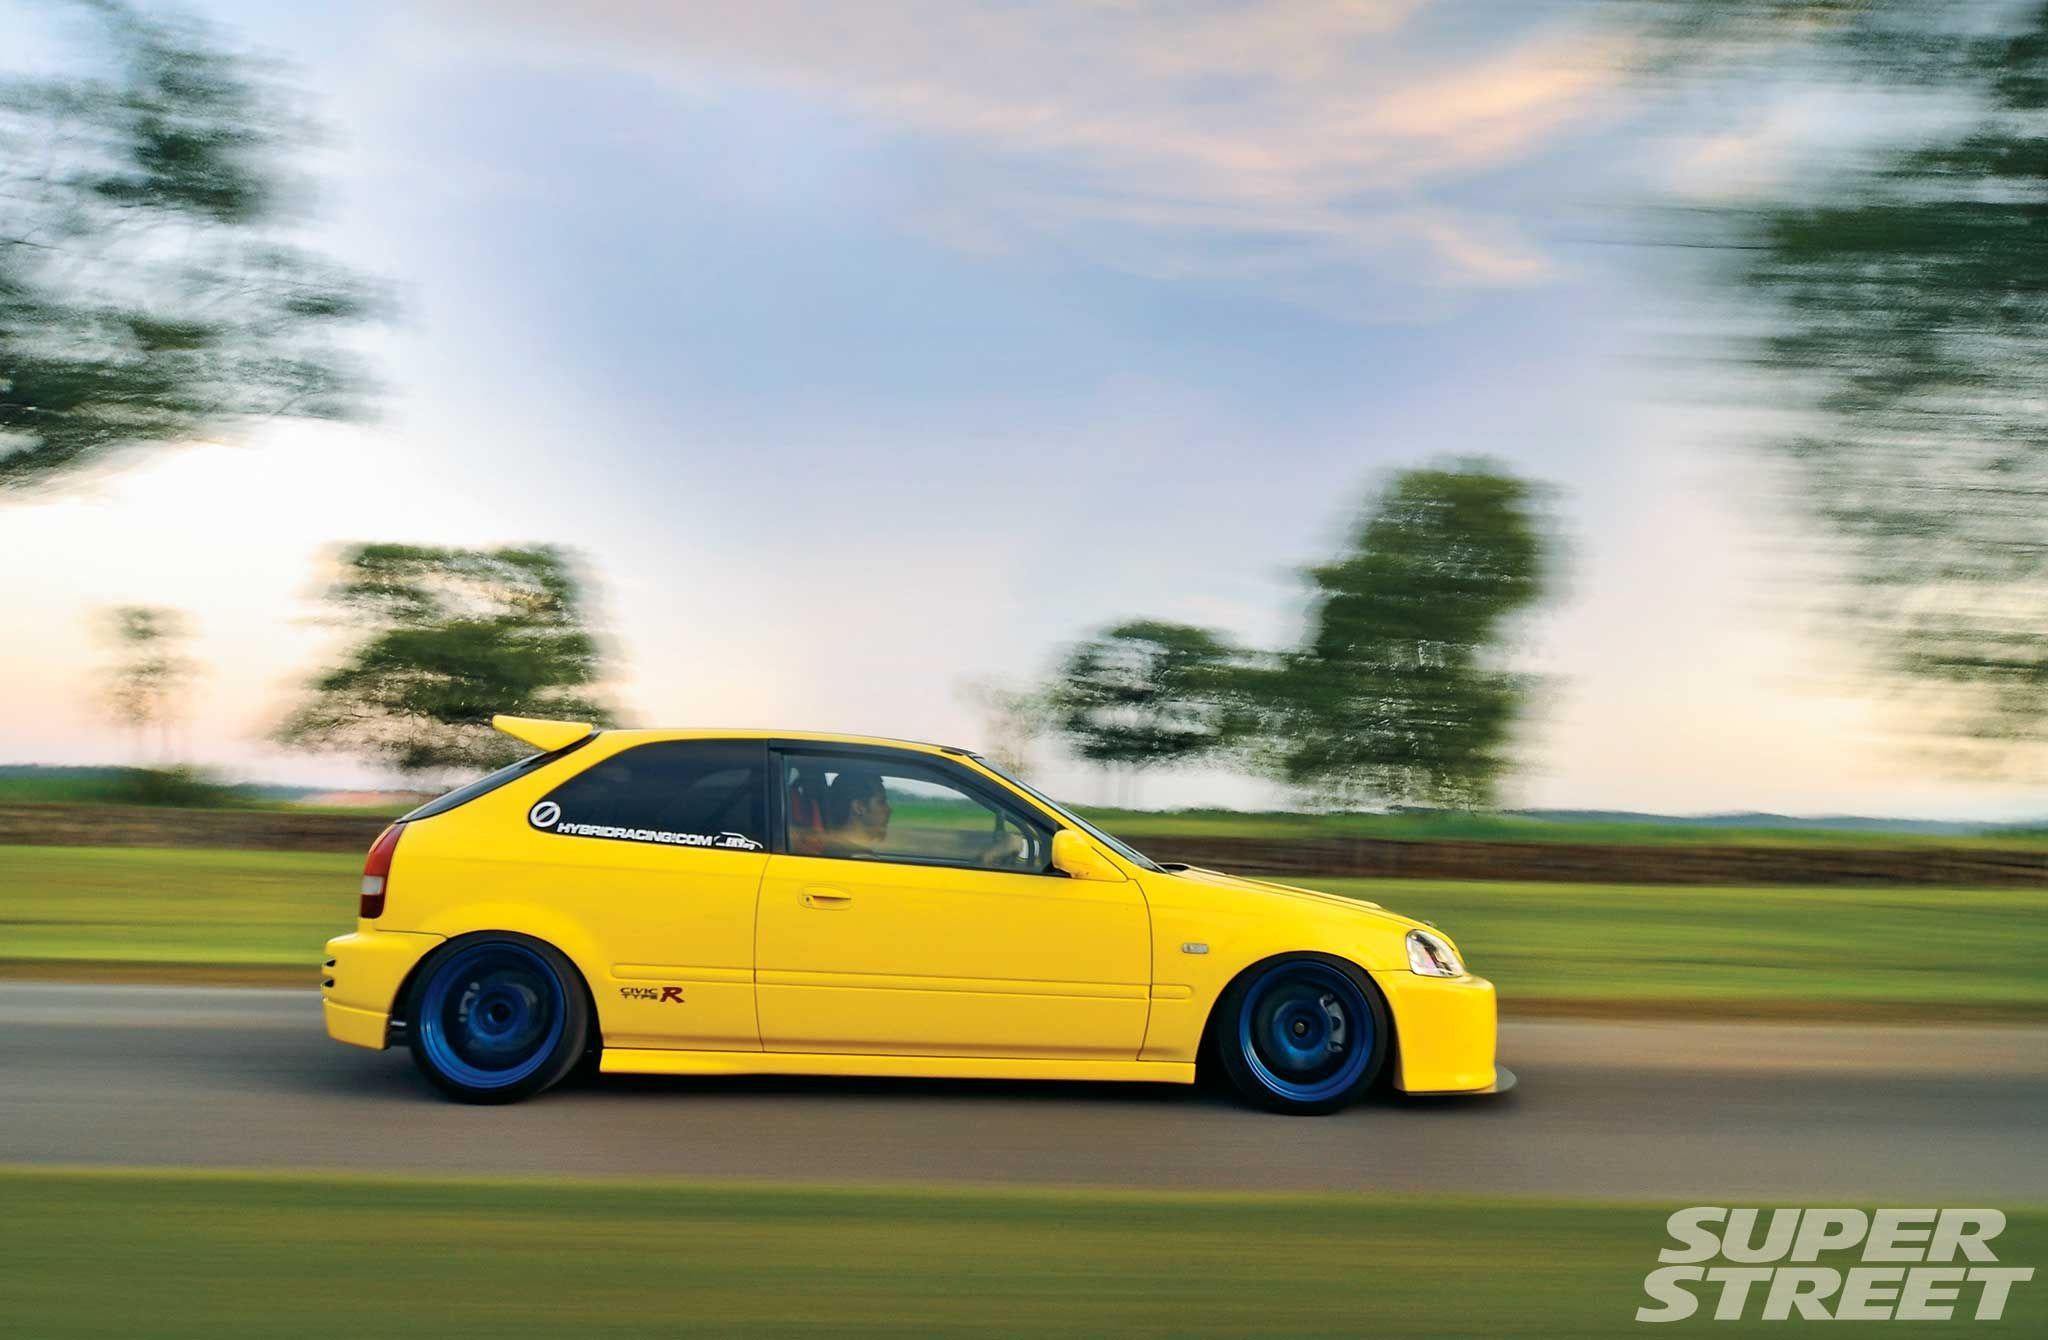 2000 honda civic type r cars yellow modified wallpaper 2048x1340 807986 wallpaperup. Black Bedroom Furniture Sets. Home Design Ideas